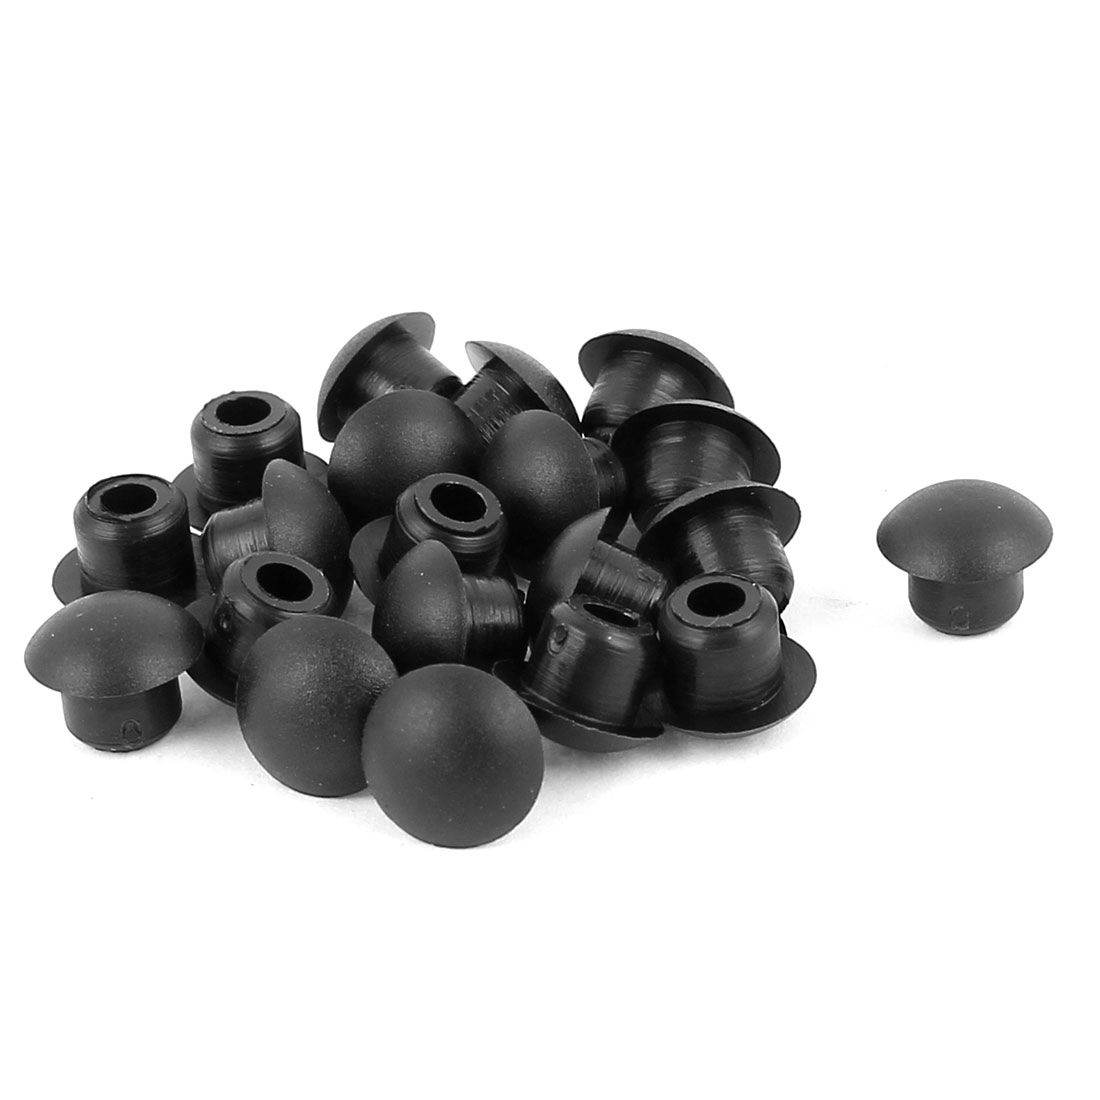 20 Pcs Nylon M6 Diameter Dome Head Cable Hole Caps Cover Insert Black